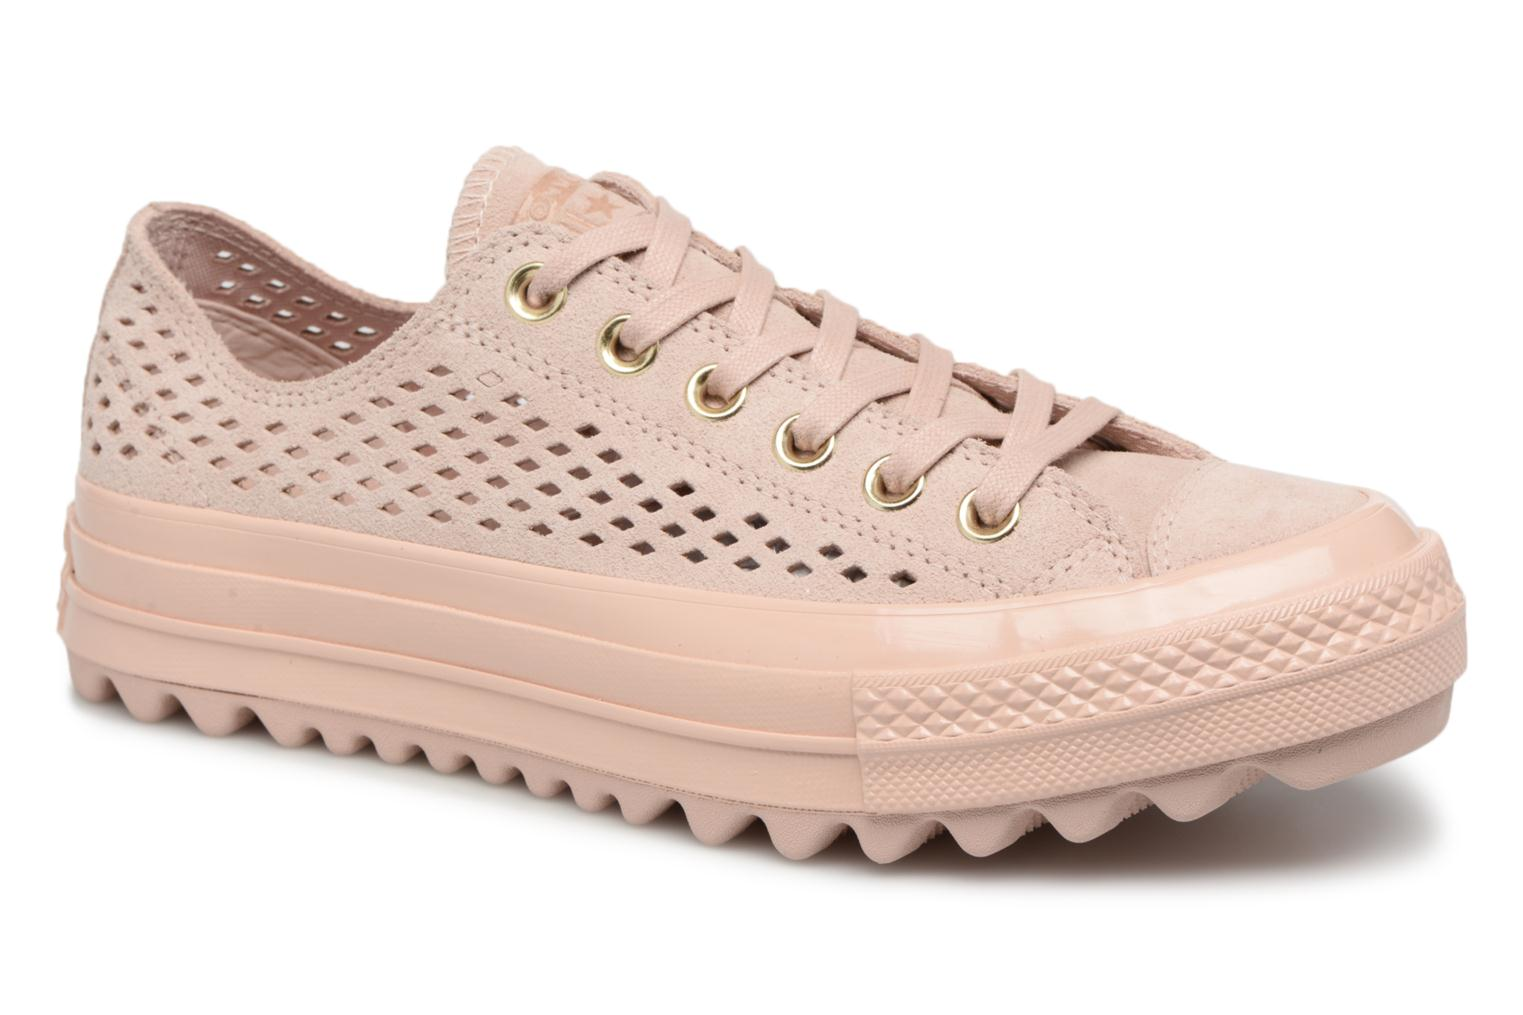 Marques Chaussure femme Converse femme Chuck Taylor All Star Lift Ripple Mono Perf Suede Ox Particle Beige